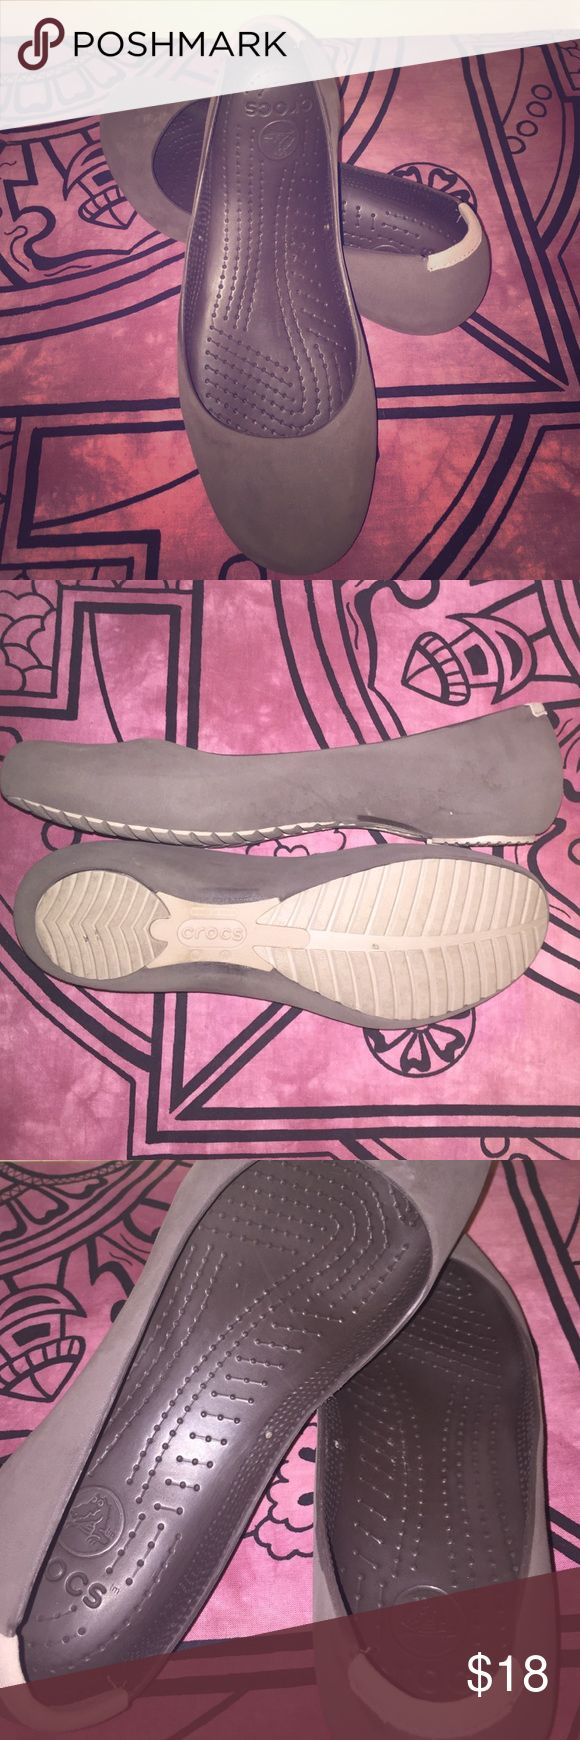 Crocs Comfort Ballet Flats Very comfortable gently worn, not your typical croc! crocs Shoes Flats & Loafers